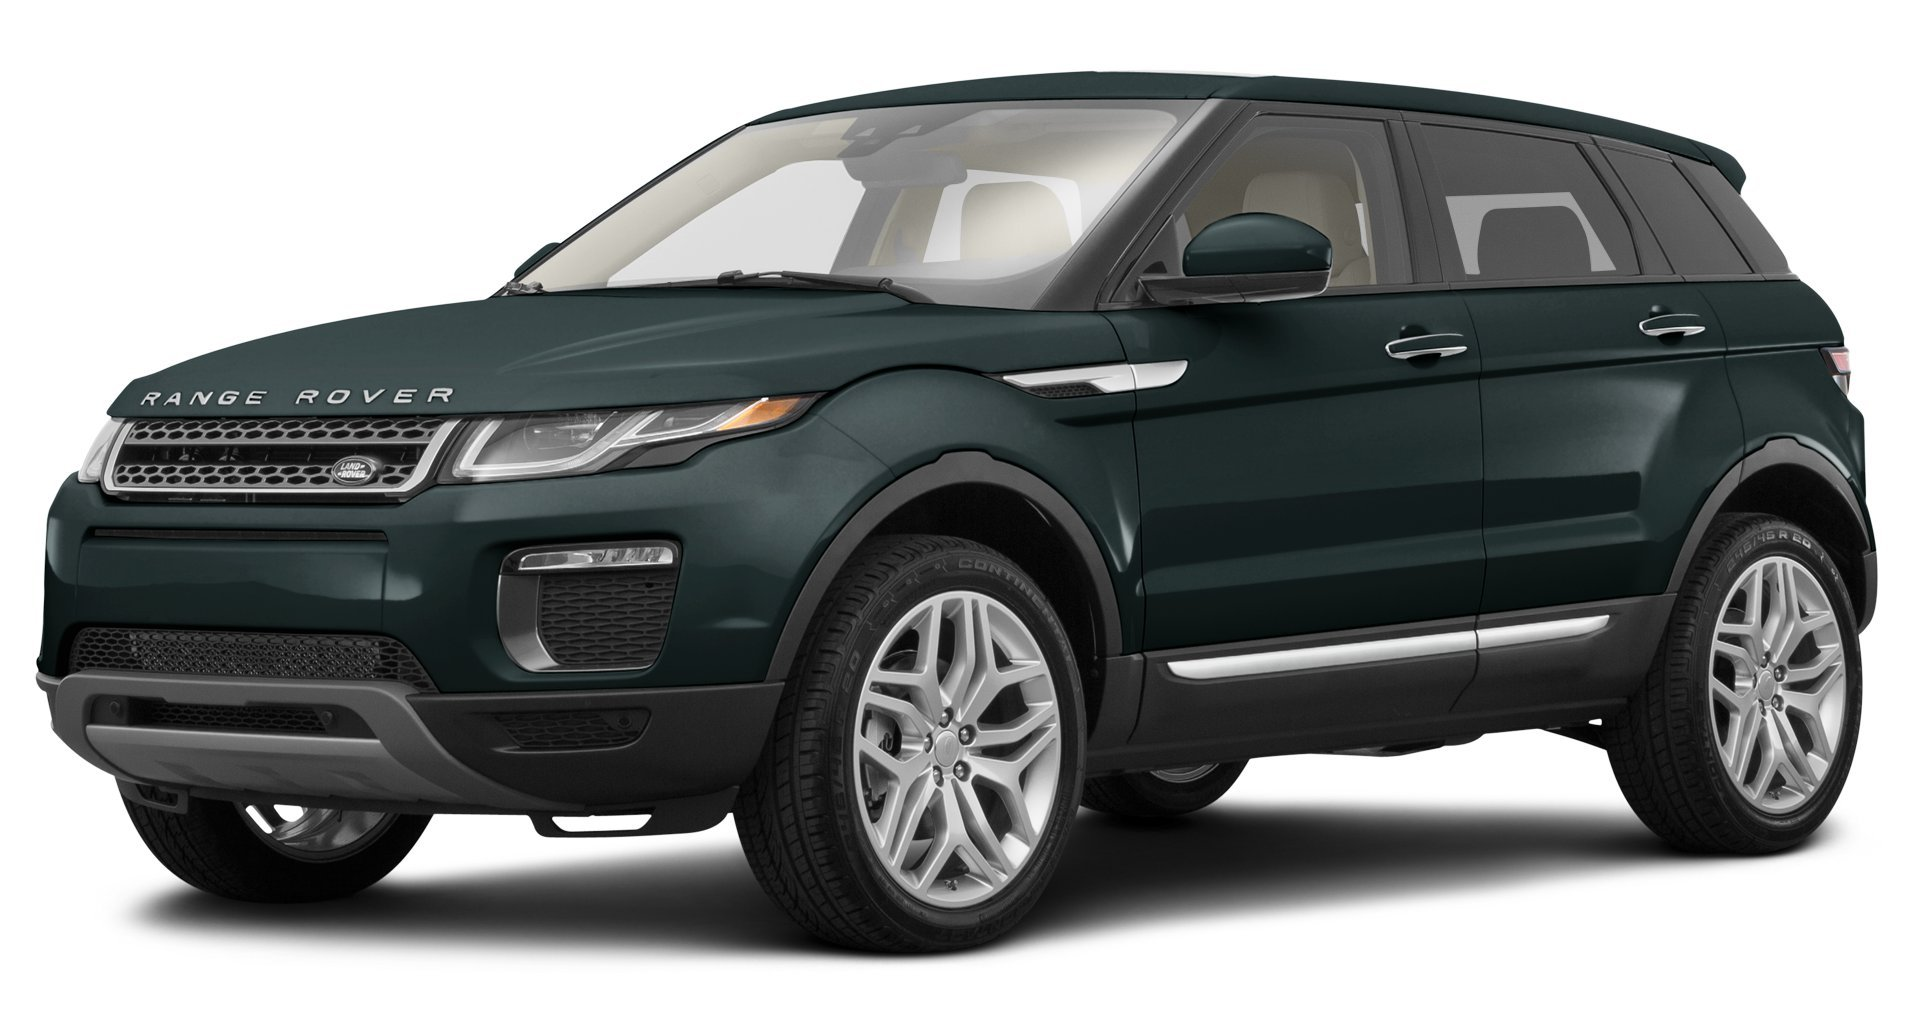 2016 land rover range rover evoque reviews images and specs vehicles. Black Bedroom Furniture Sets. Home Design Ideas